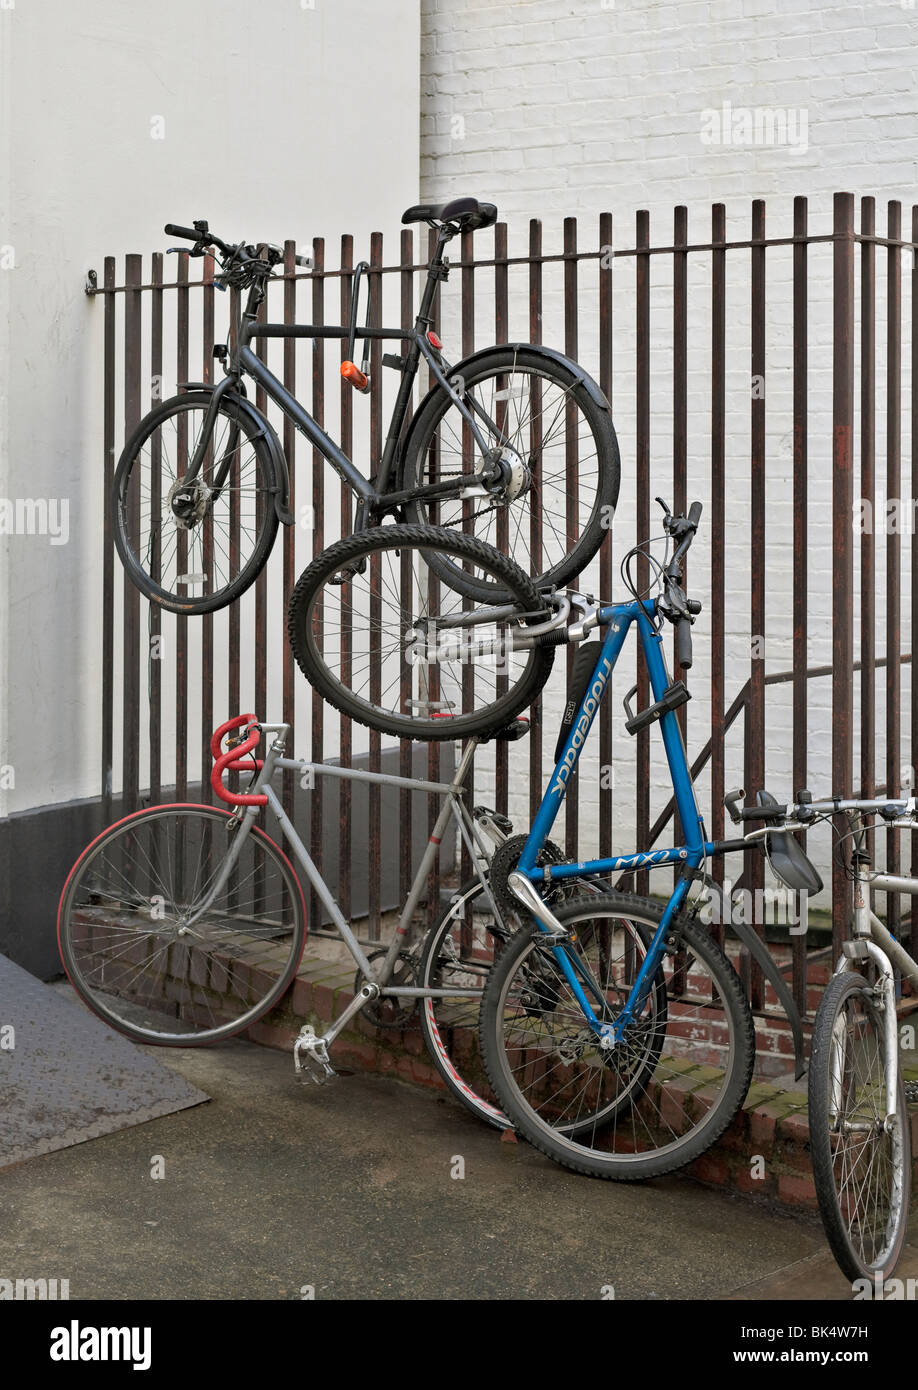 Bicycle parking in London, England. - Stock Image